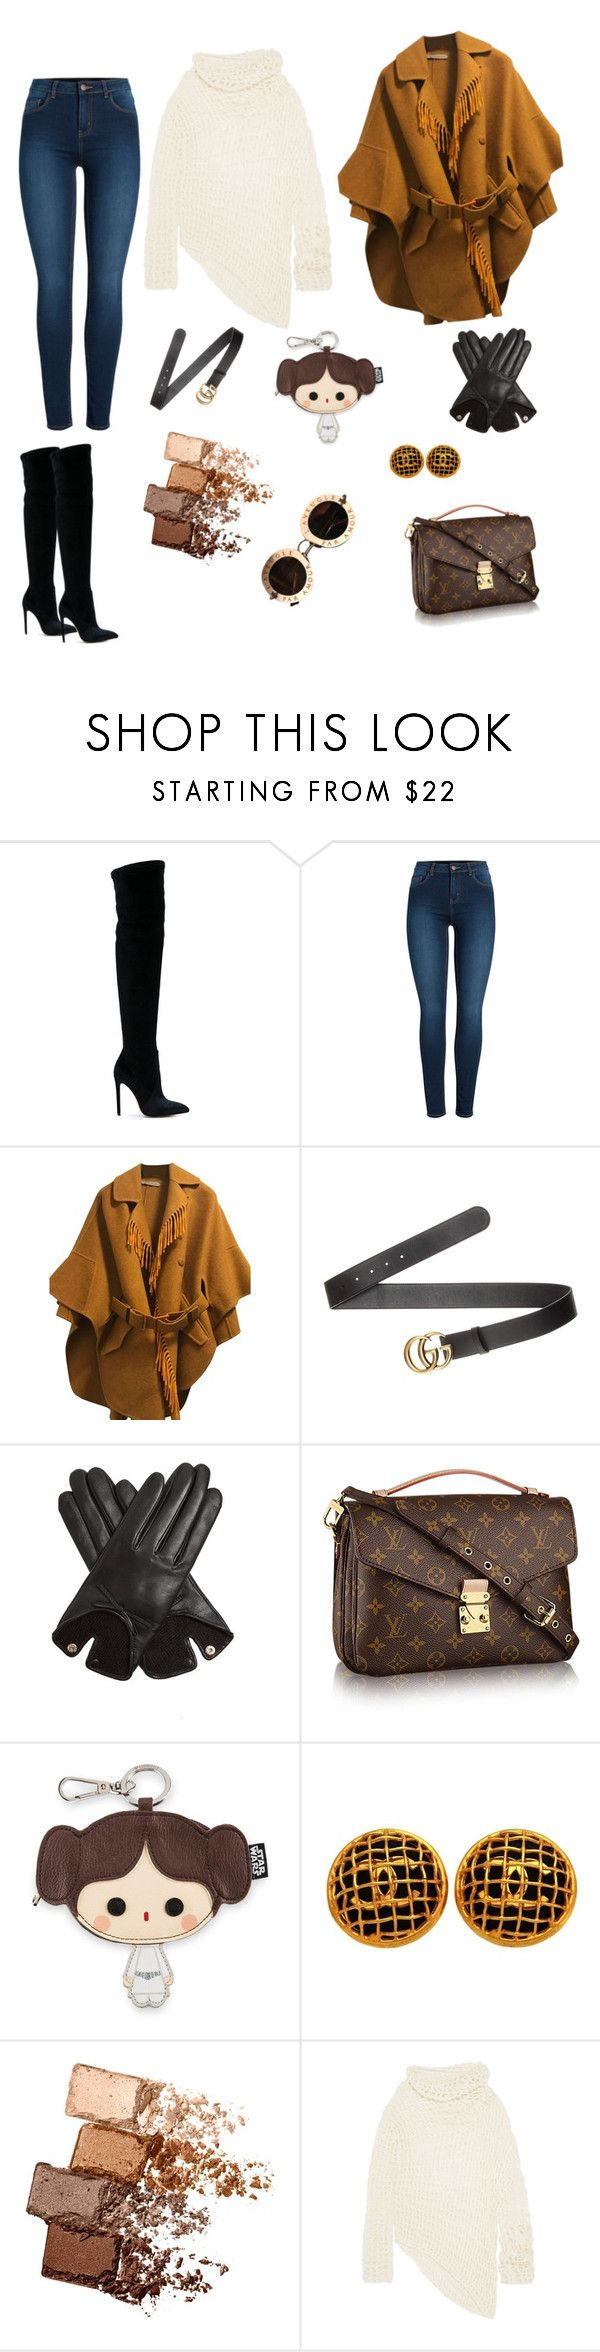 """""""warm"""" by walerie ❤ liked on Polyvore featuring Gianni Renzi, Pieces, Ermanno Scervino, Gucci, AGNELLE, Loungefly, Chanel, Maybelline and Ann Demeulemeester"""